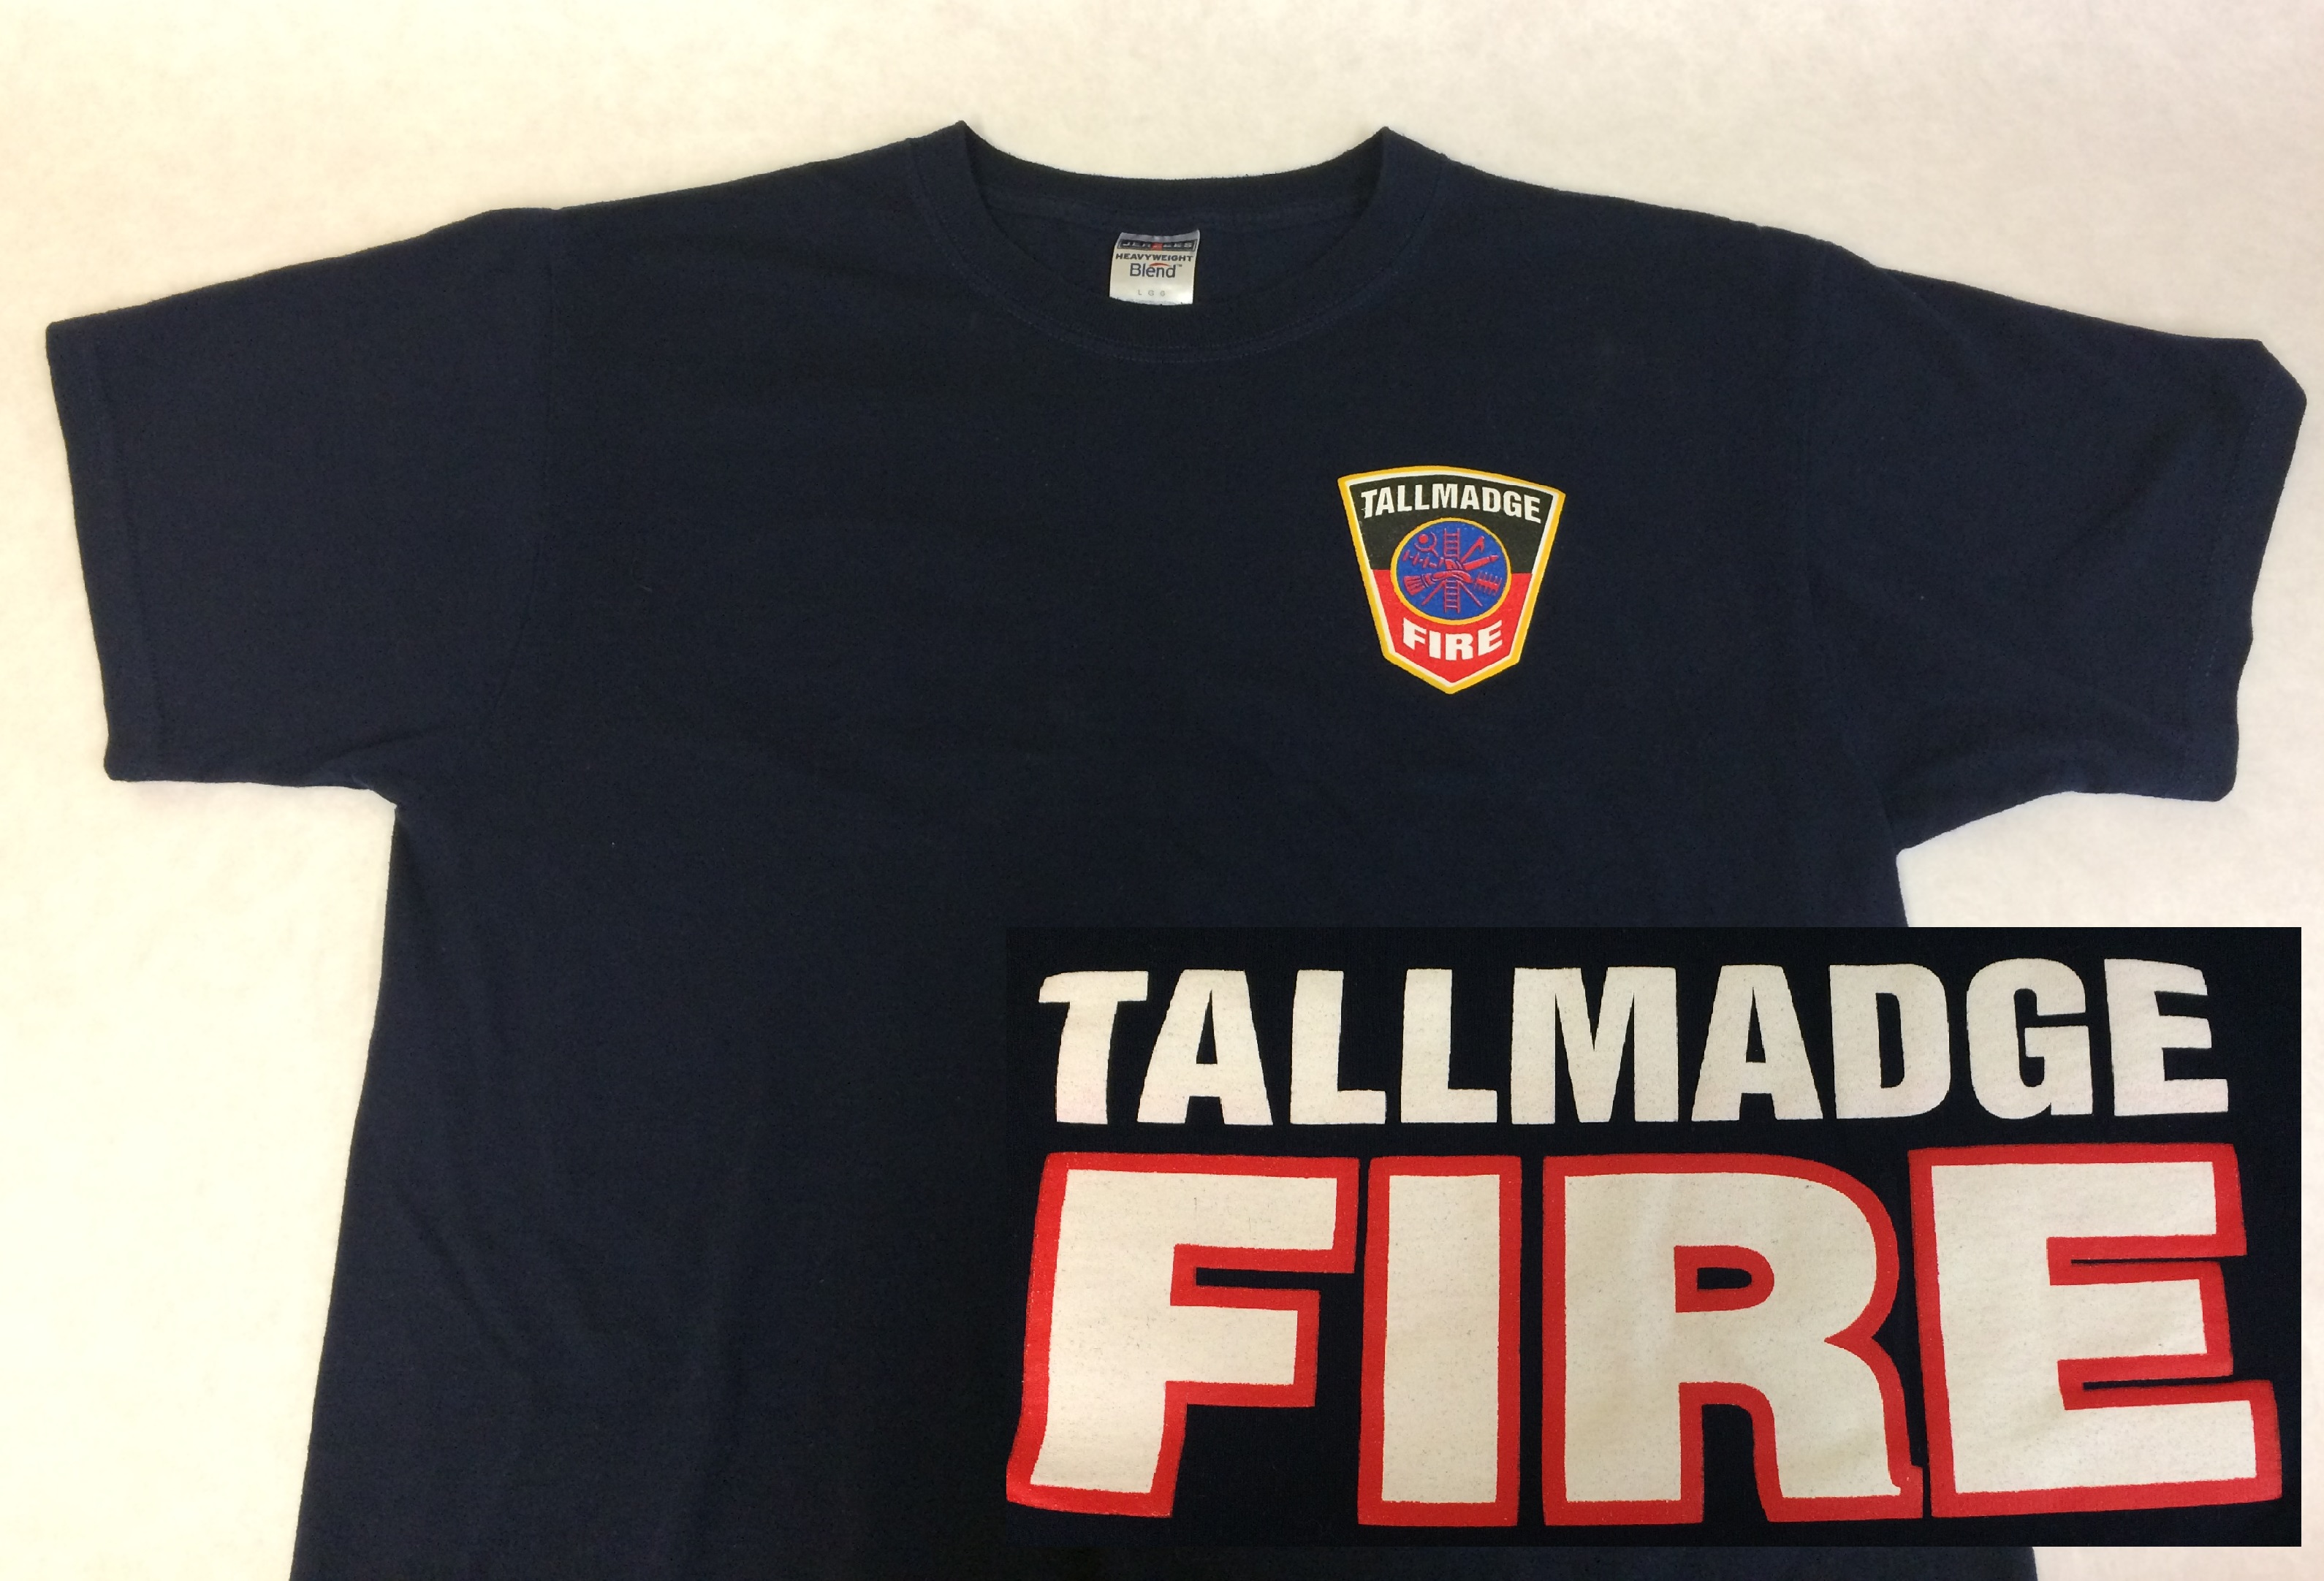 Tallmadge Fire Short Sleeve T-Shirt